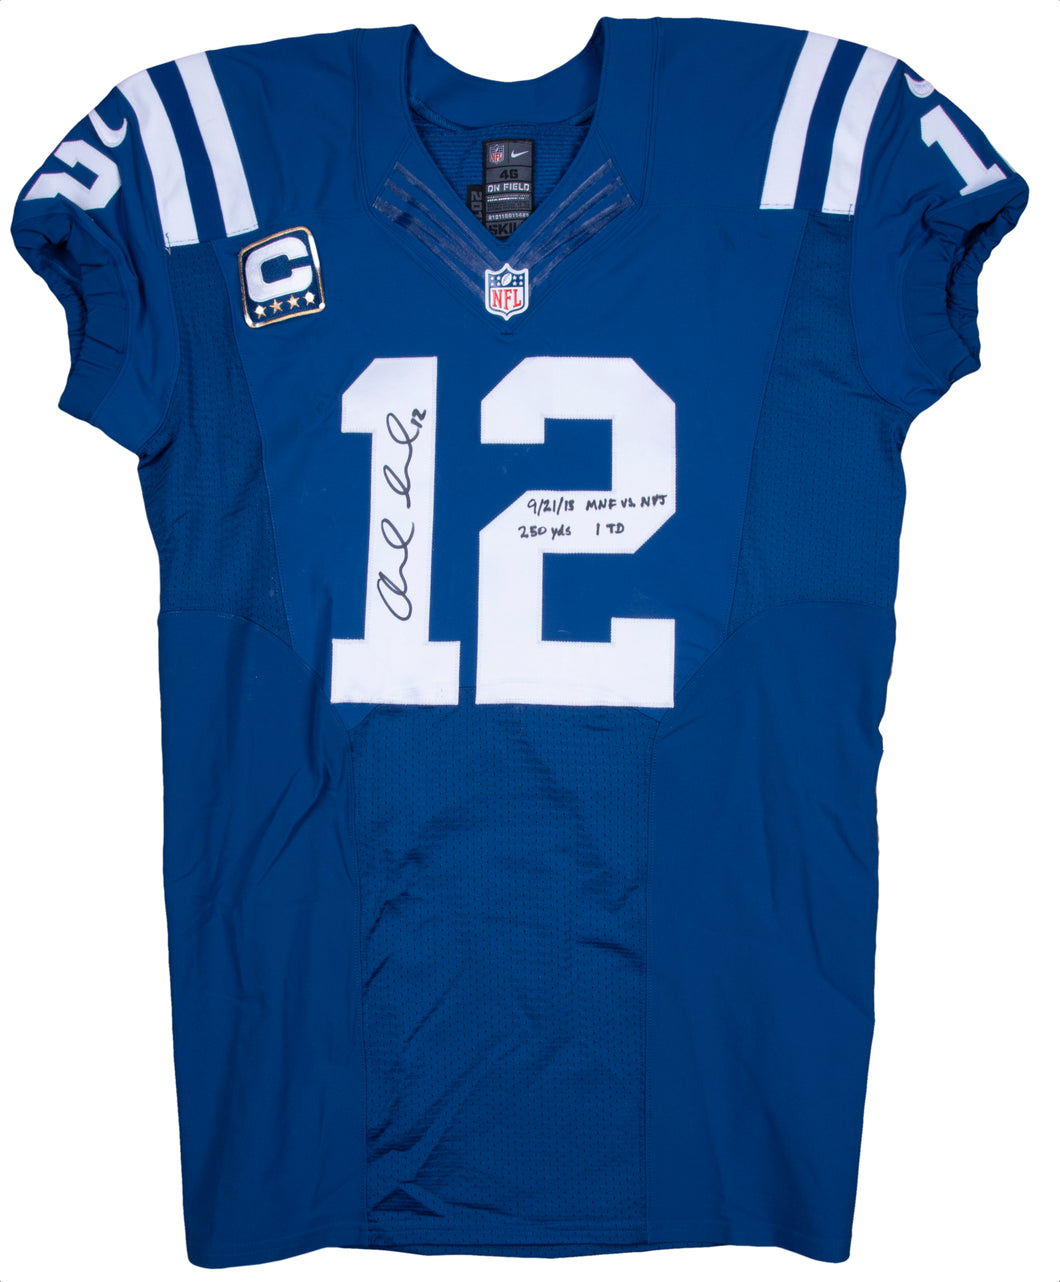 2015 Andrew Luck Game Used & Signed Indianapolis Colts Home Jersey Photo Matched To 9/21/2015